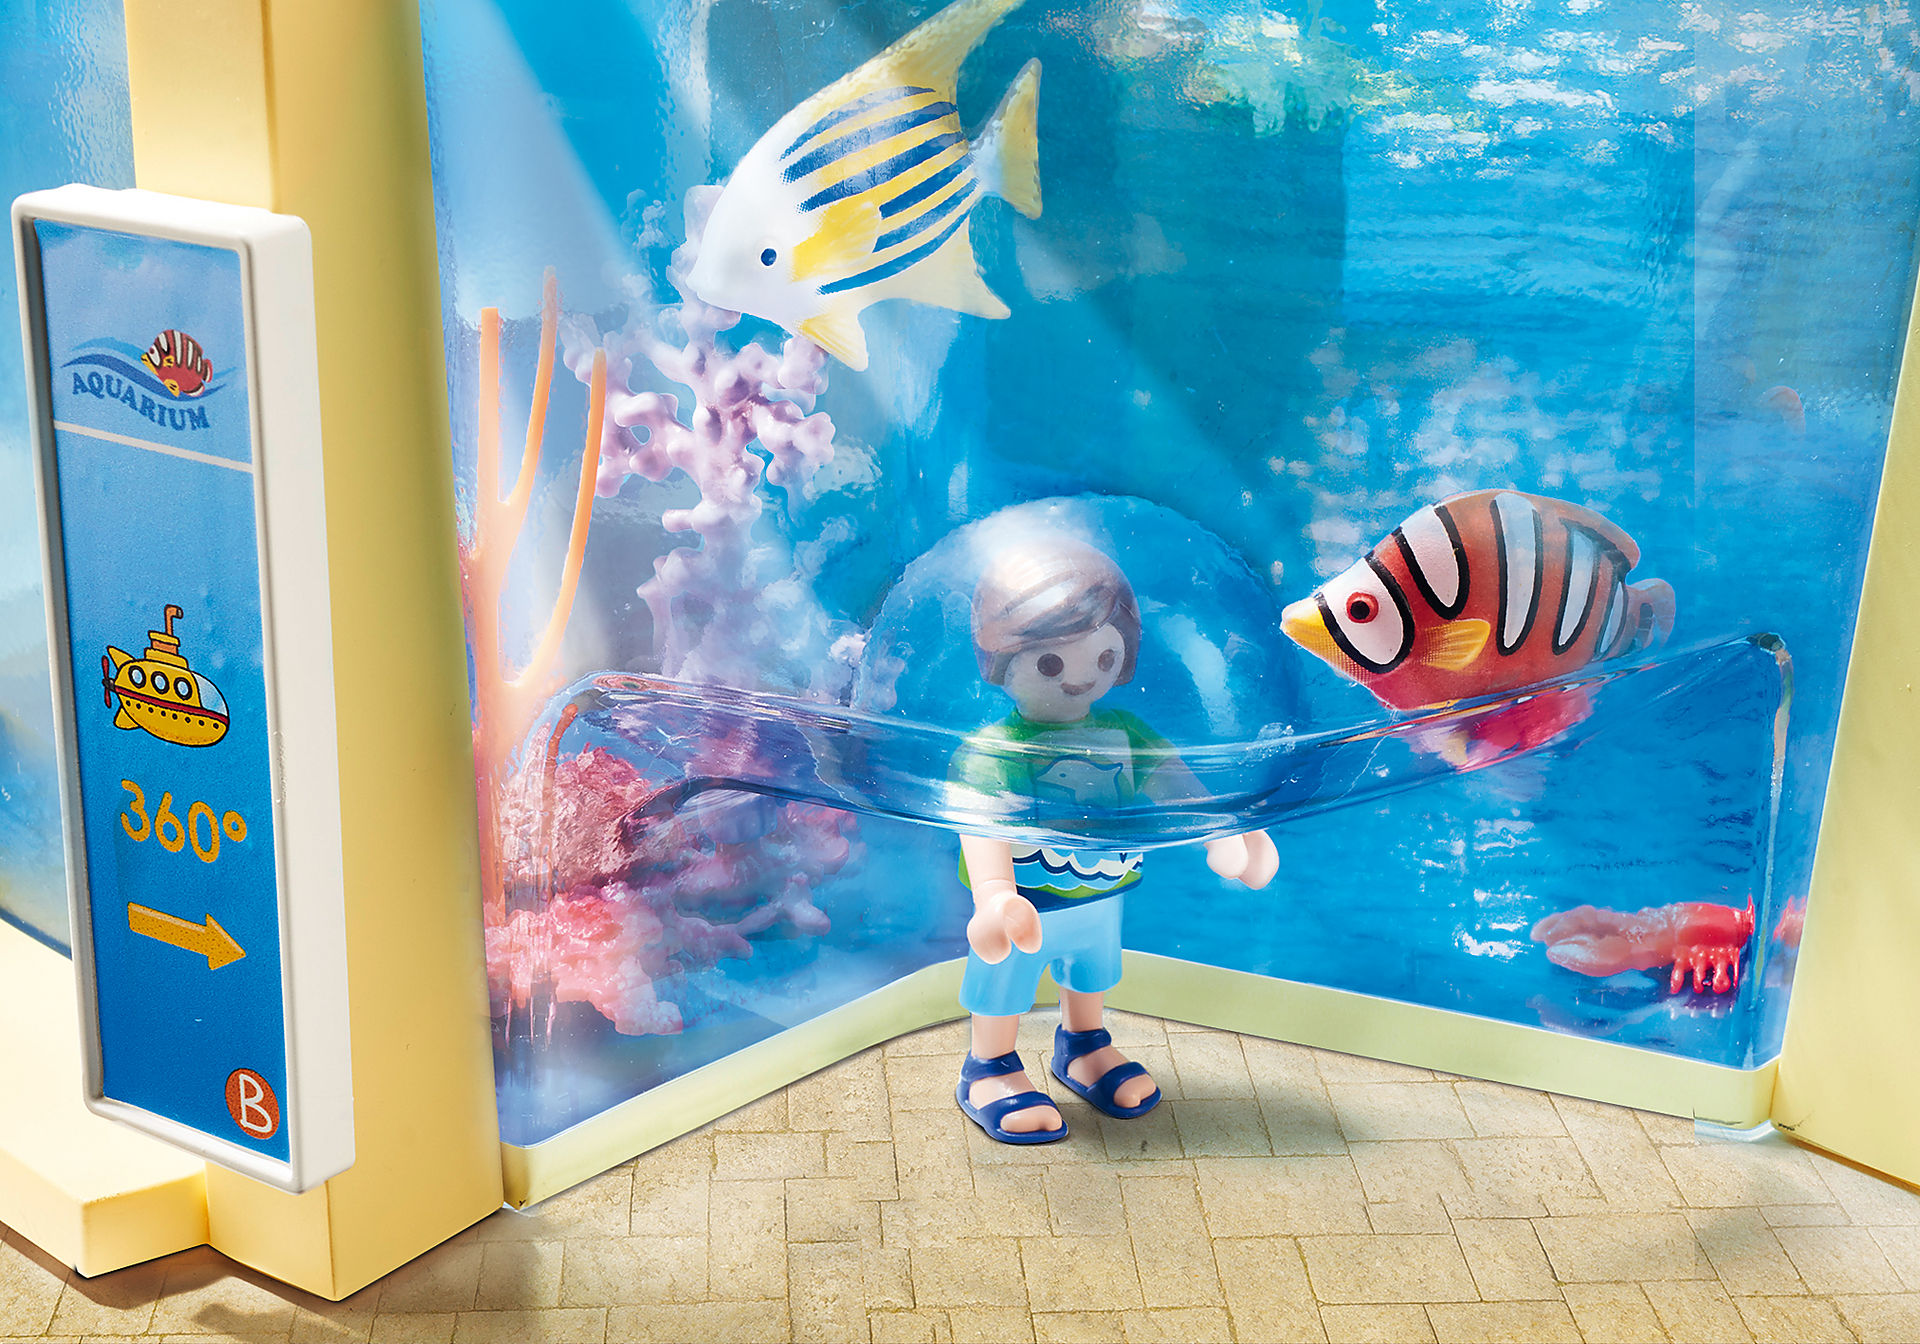 http://media.playmobil.com/i/playmobil/9060_product_extra3/Aquarium